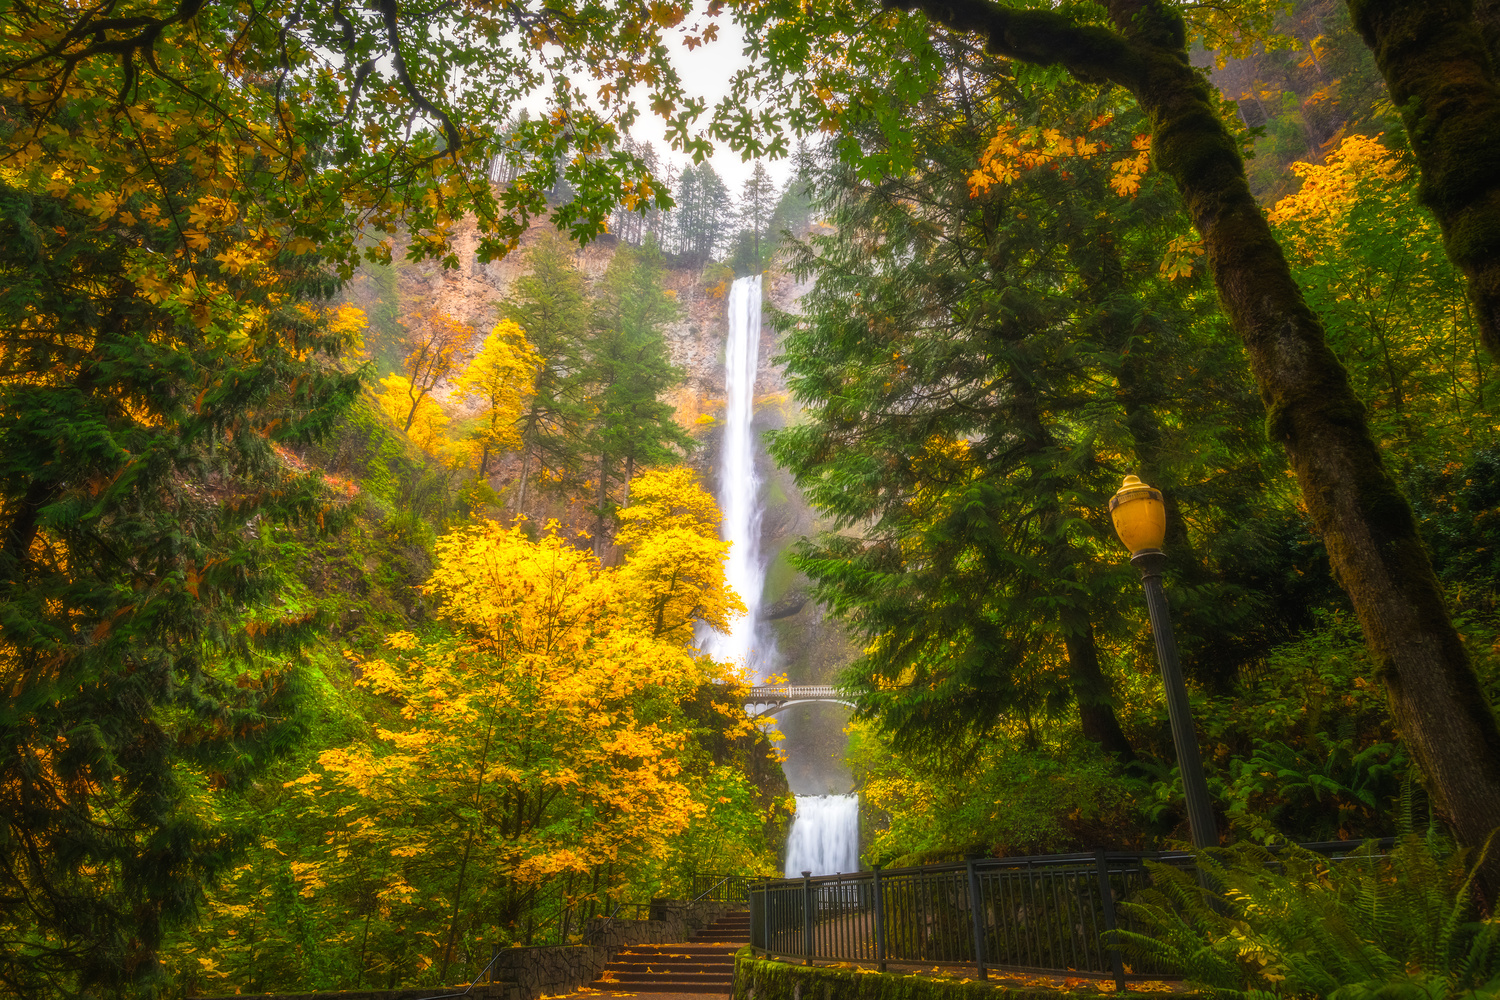 Queen of the Columbia River Gorge by Daniel Gomez